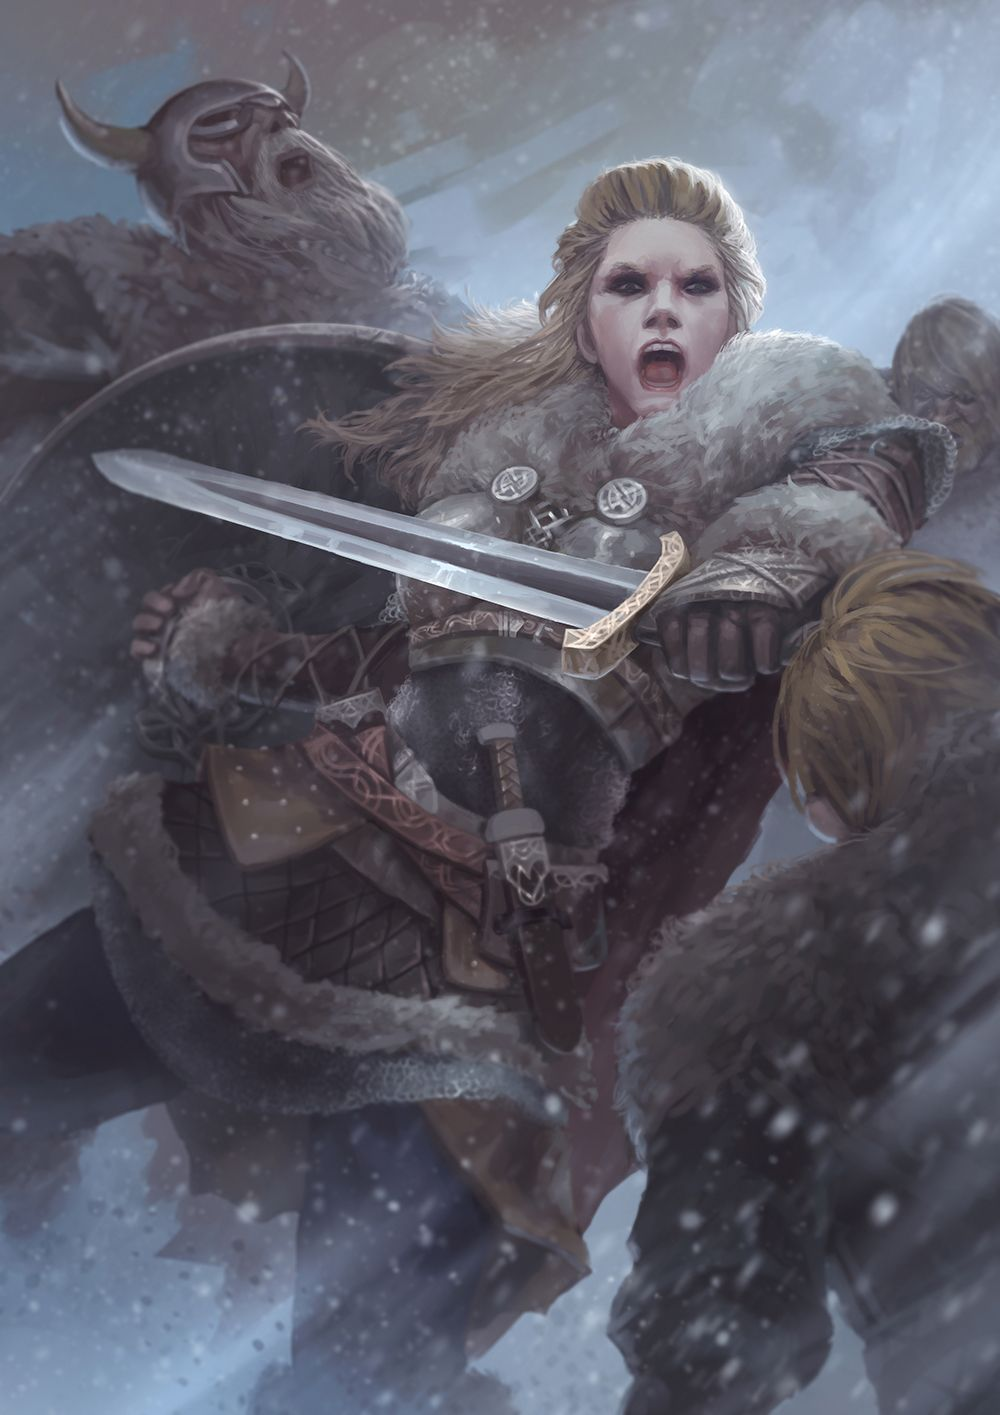 Vikings Lagherta The Shield Maiden By Stupid Crow